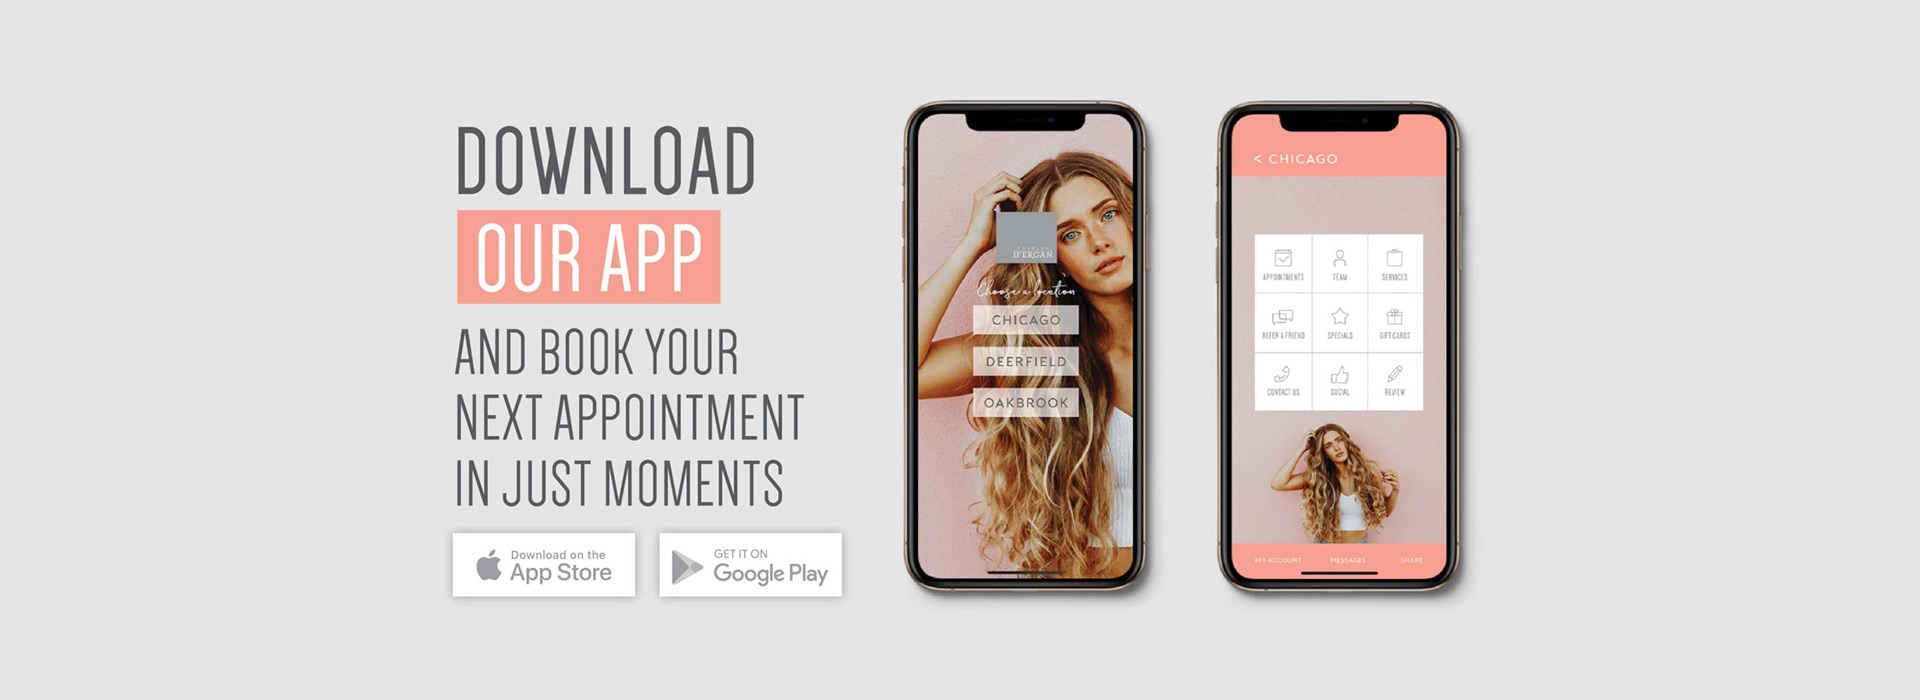 Download our app and book your appointment in just moments